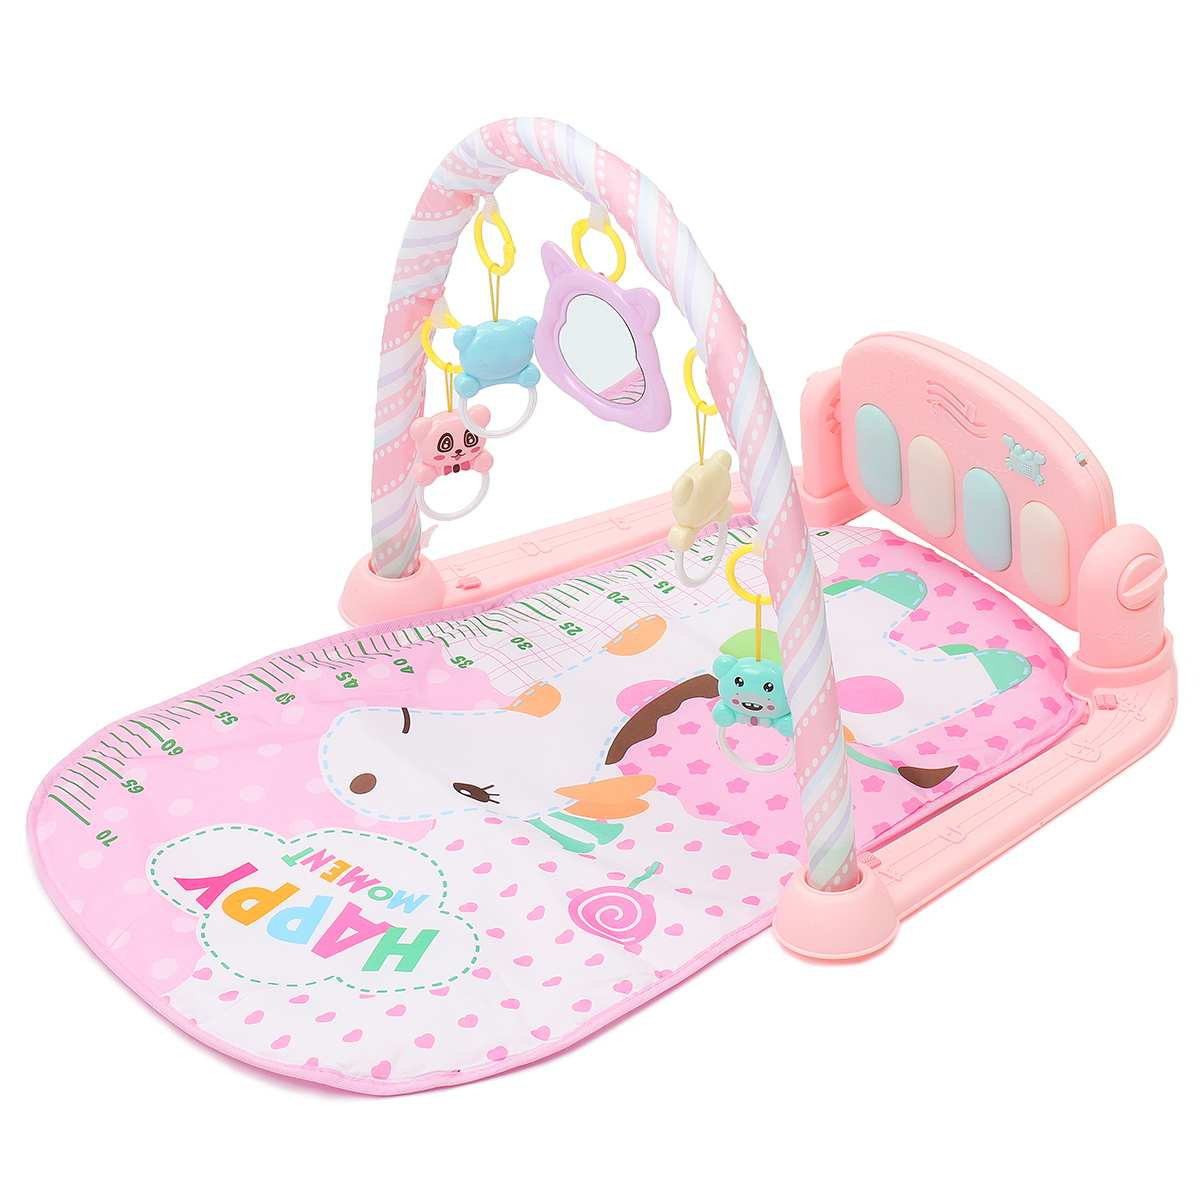 Play Mat Baby Kids Rug Educational Puzzle Carpet With Piano Keyboard And Cute Animal Playmat Baby Gym Crawling Activity Mat Toys